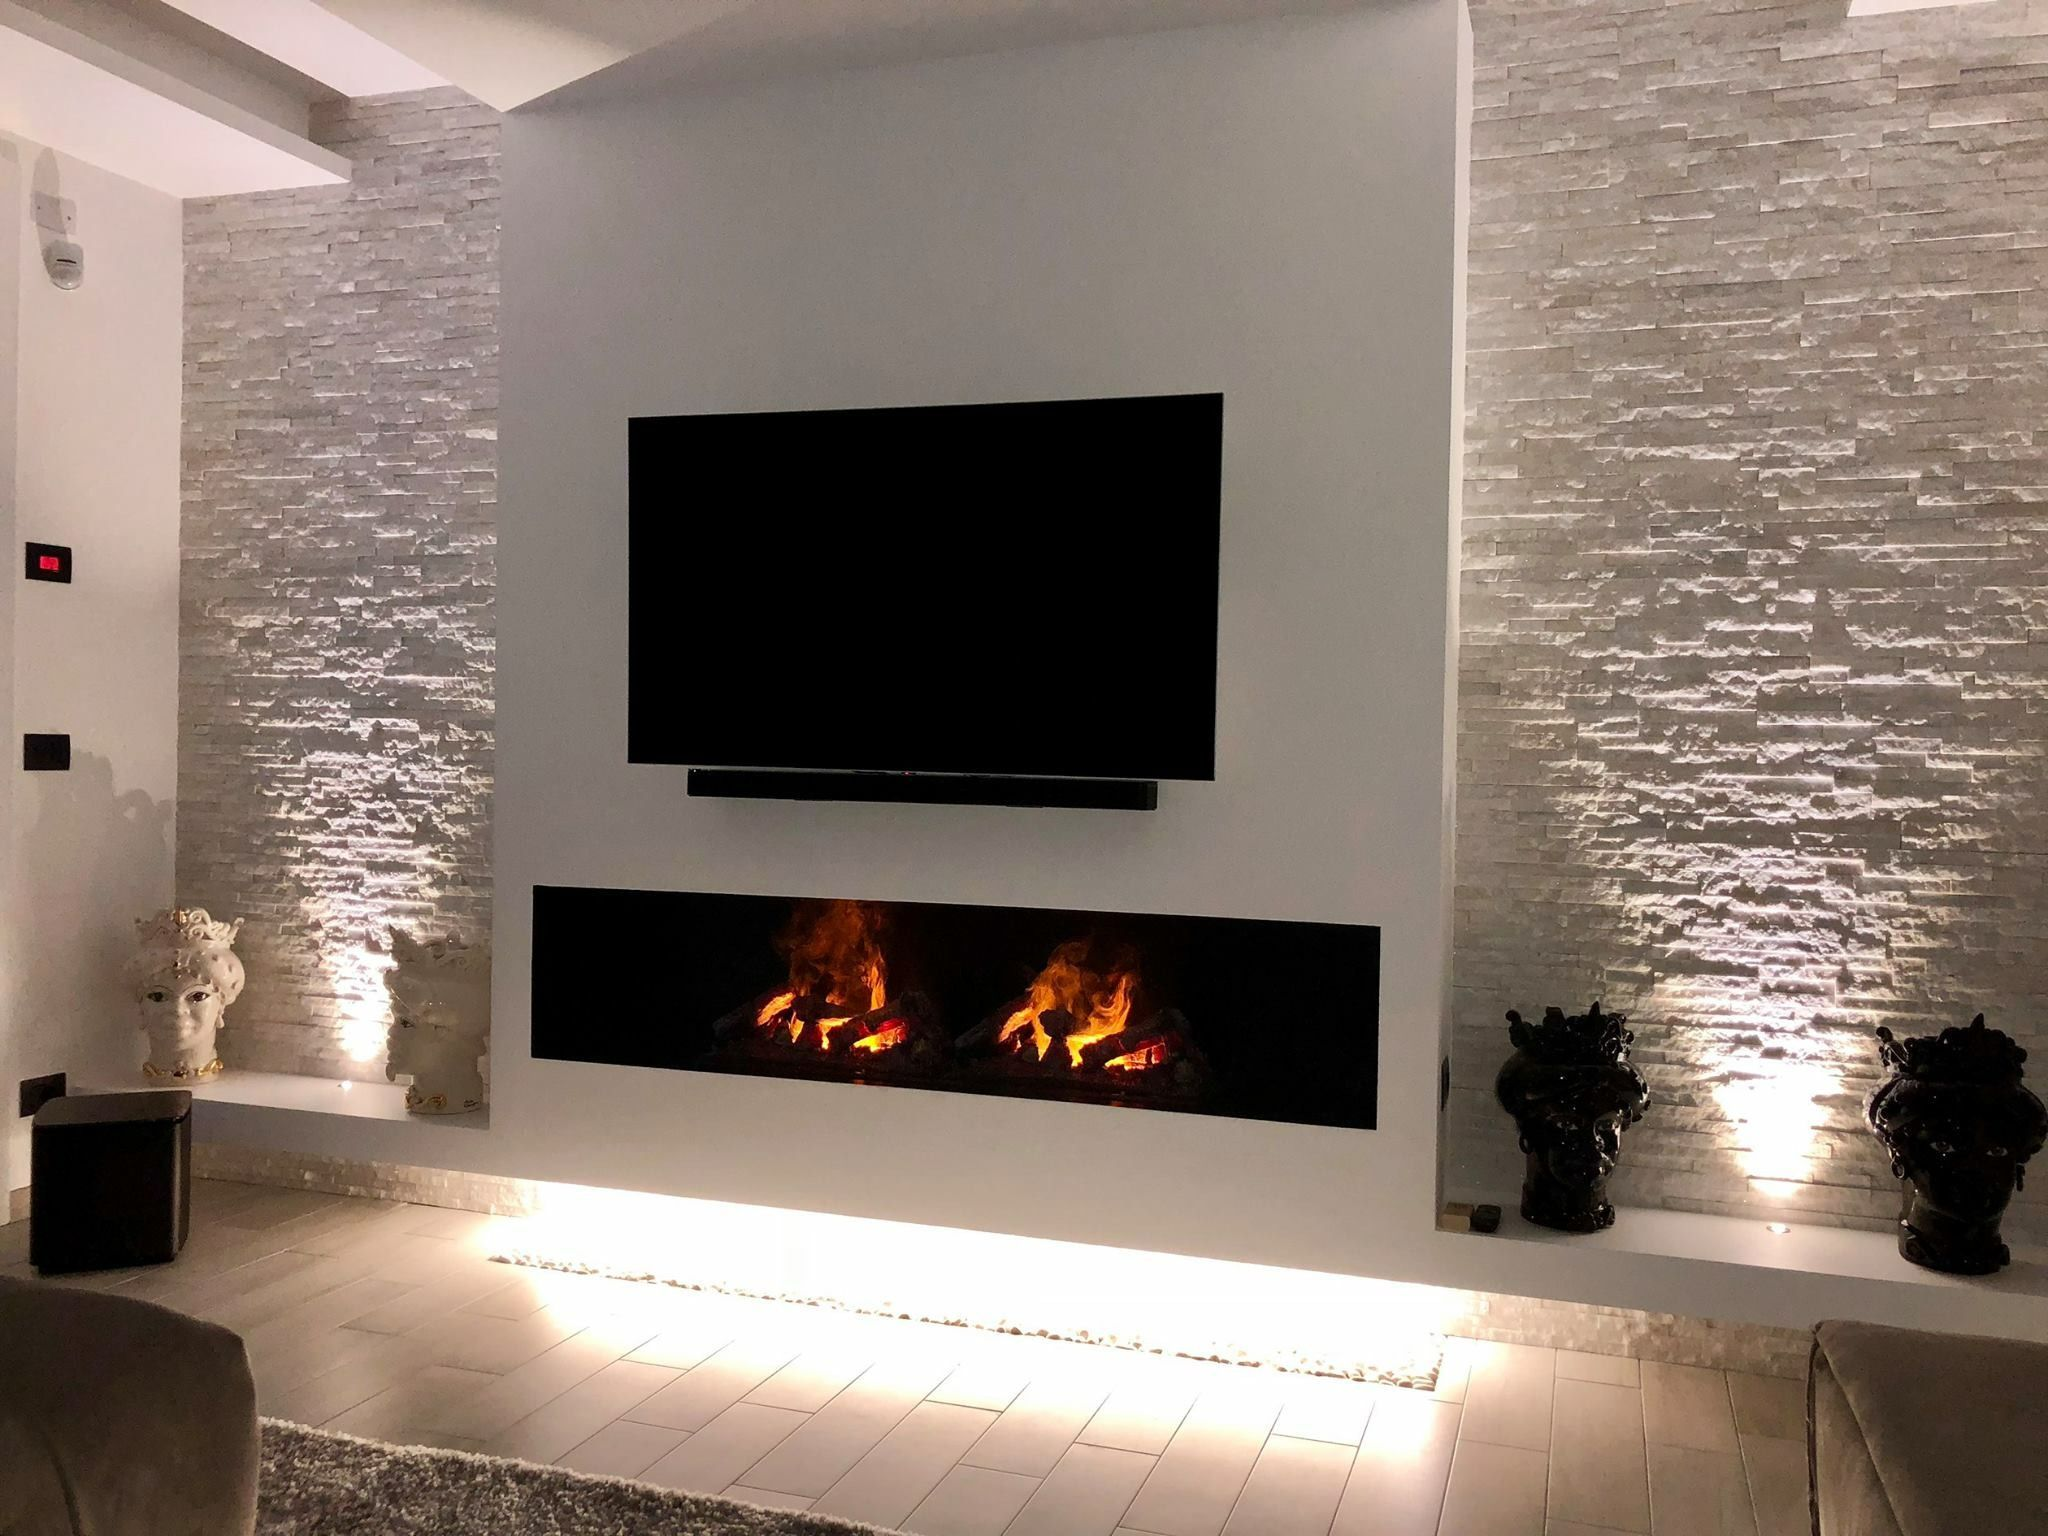 Homely Retro Home Decor Transformation A Must Study Pin Ref 4059498798 For That Chic D Electric Fireplace Living Room Fireplace Tv Wall Contemporary Fireplace